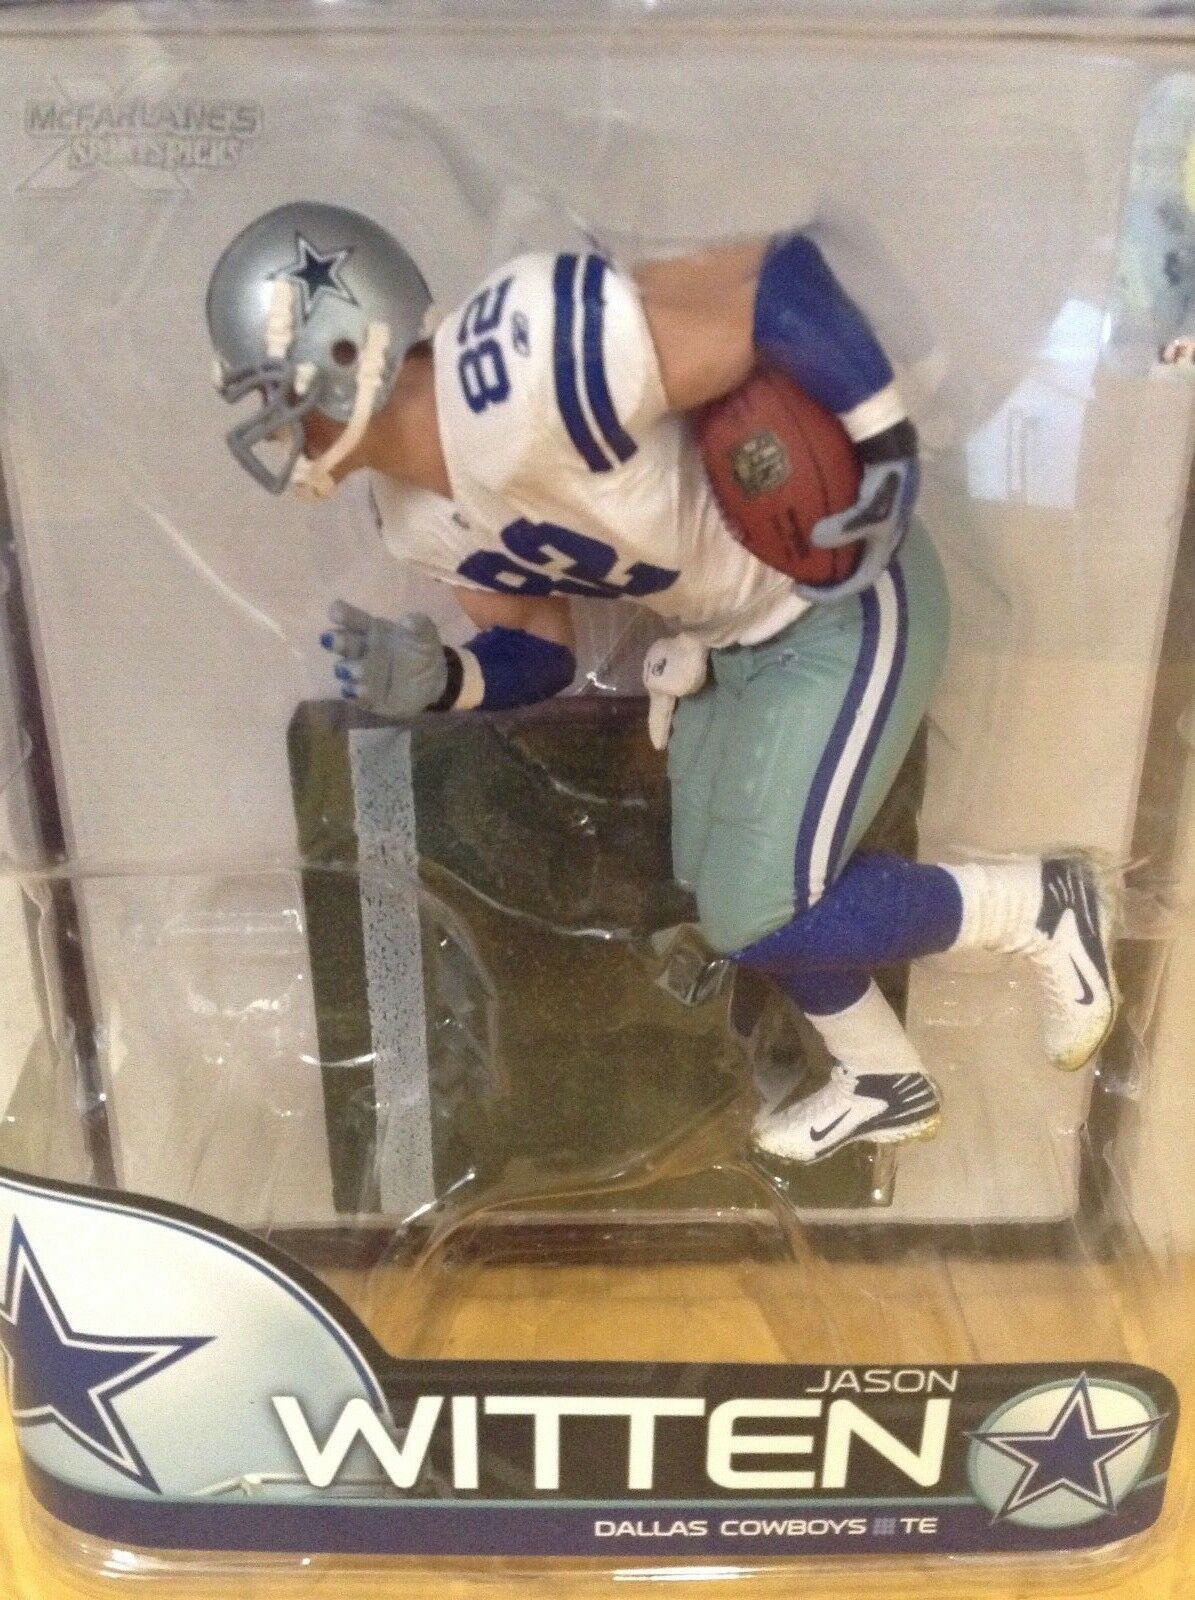 NFL JASON DALLAS COWBOYS JASON NFL WITTEN  /  McFARLANES SERIES 21  /  only 5 SHIPPING 90fc2e